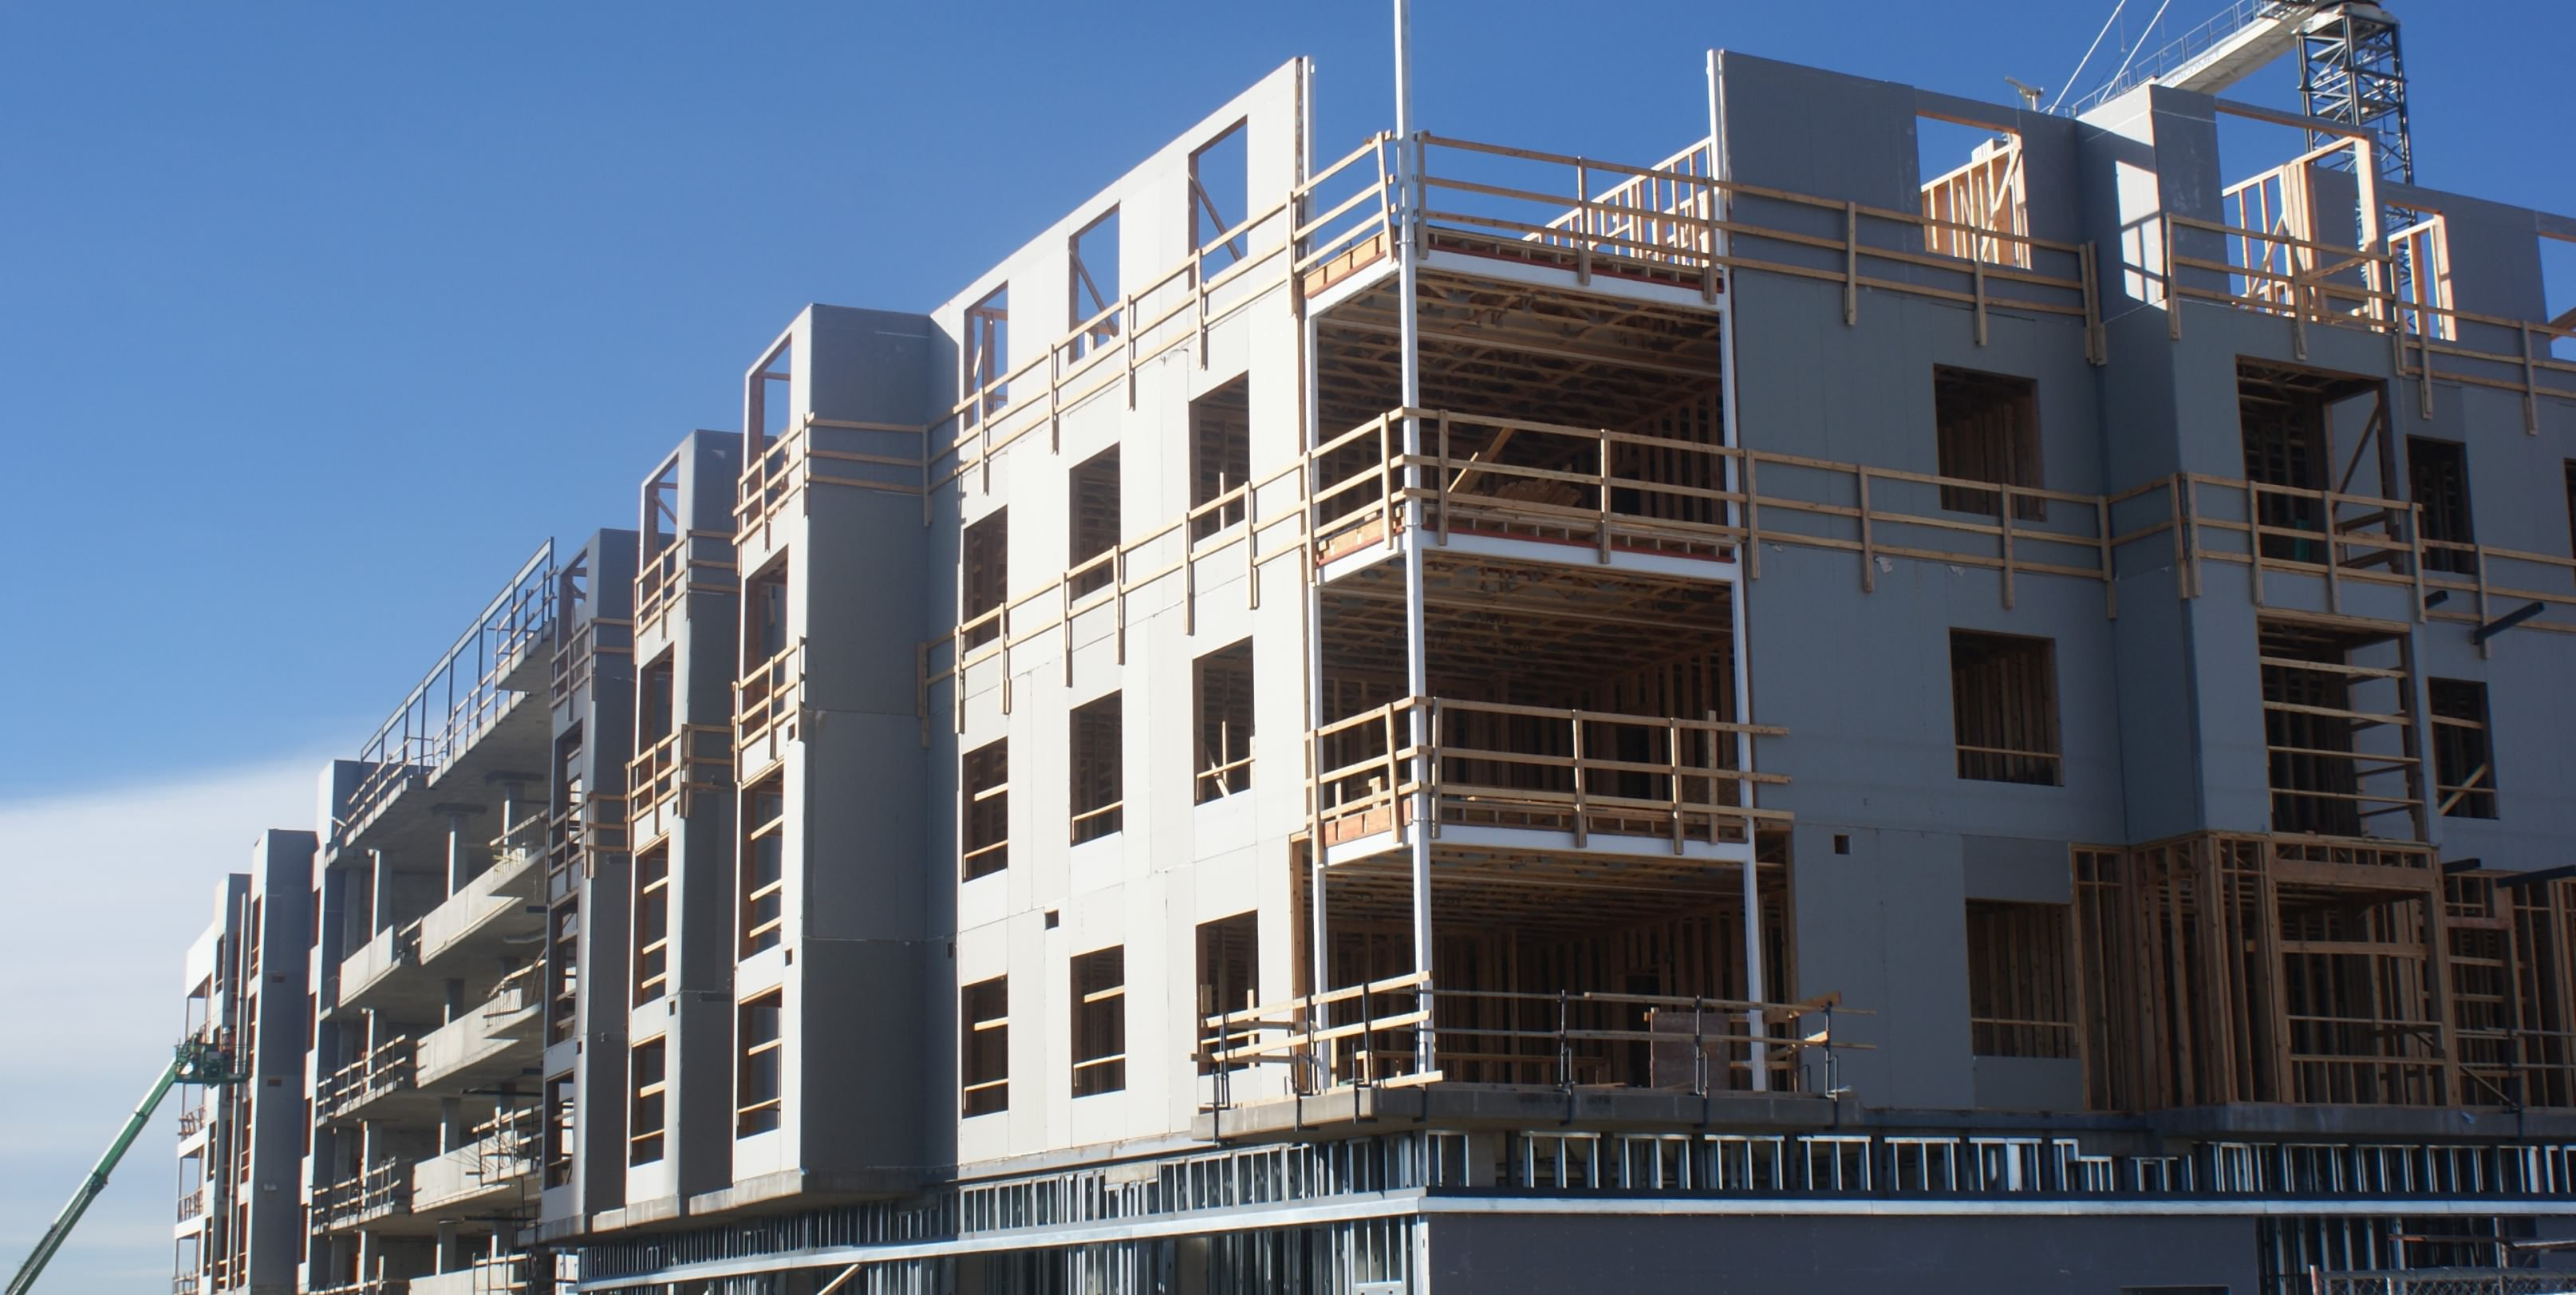 New Case Study: Type III-B Application of LP® FlameBlock® Fire-Rated OSB Sheathing Provides Cost-Saving Solution for Denver Framing Company